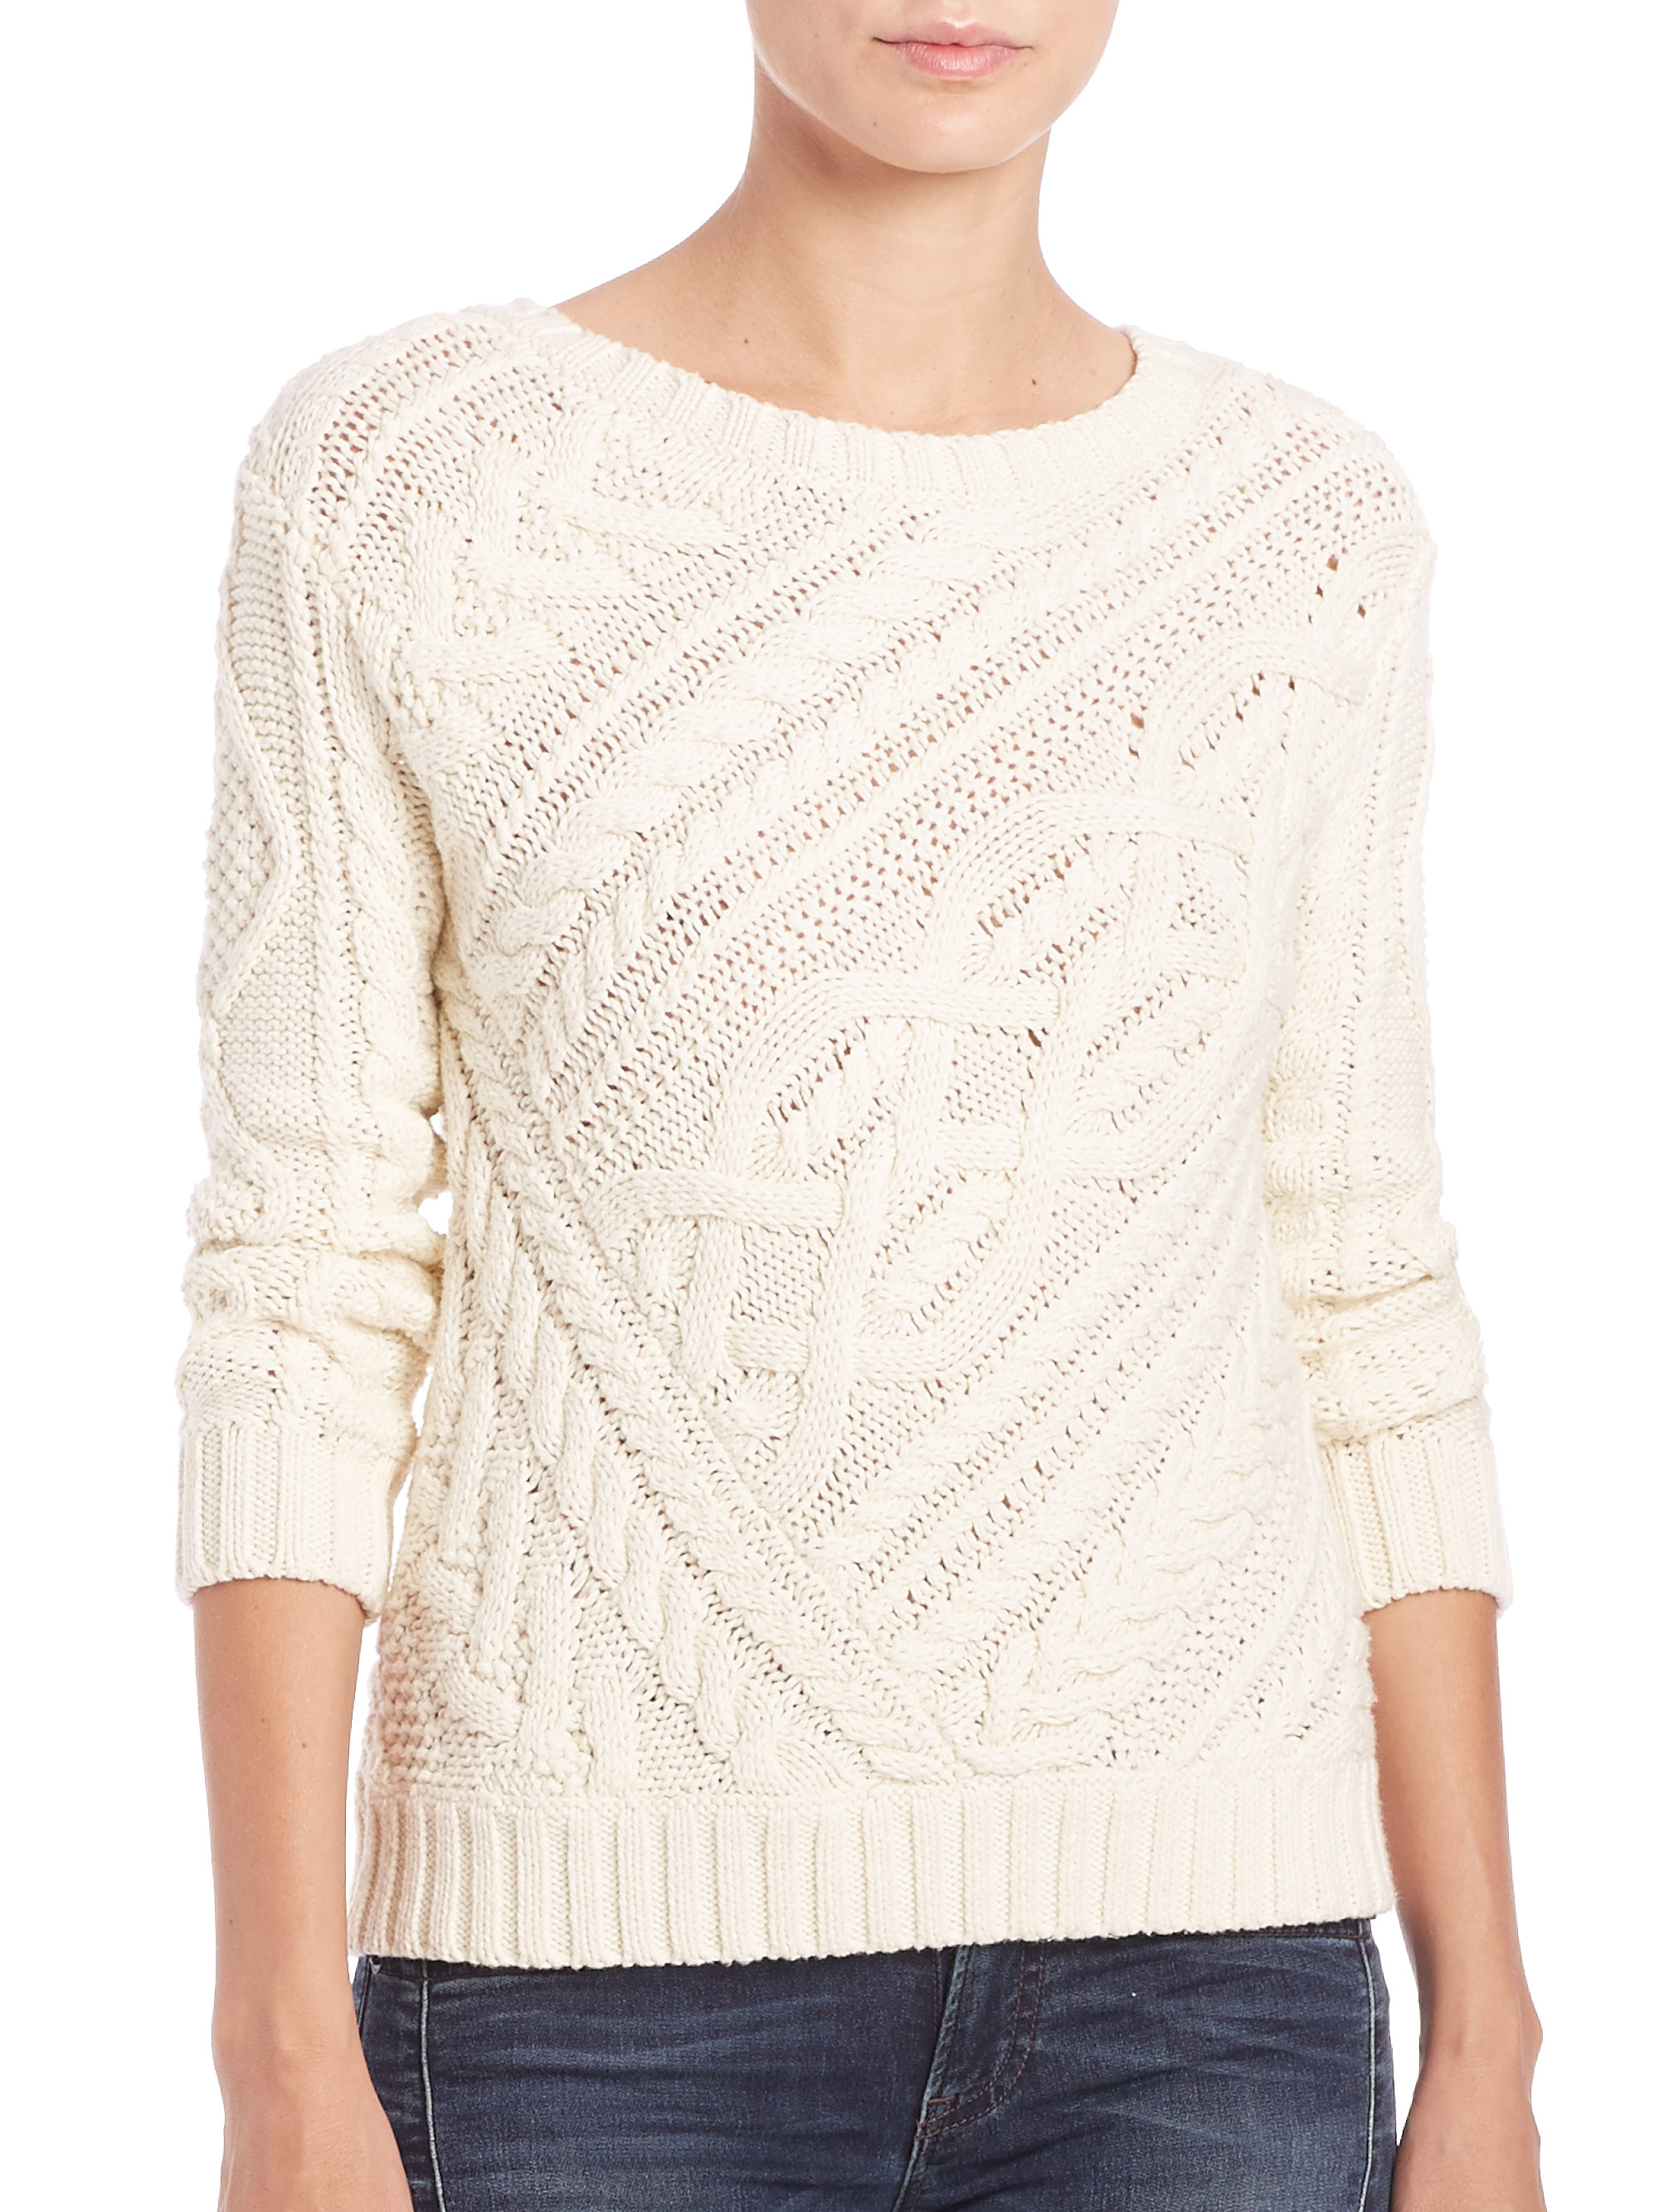 Polo ralph lauren Cable-knit Sweater in Natural | Lyst